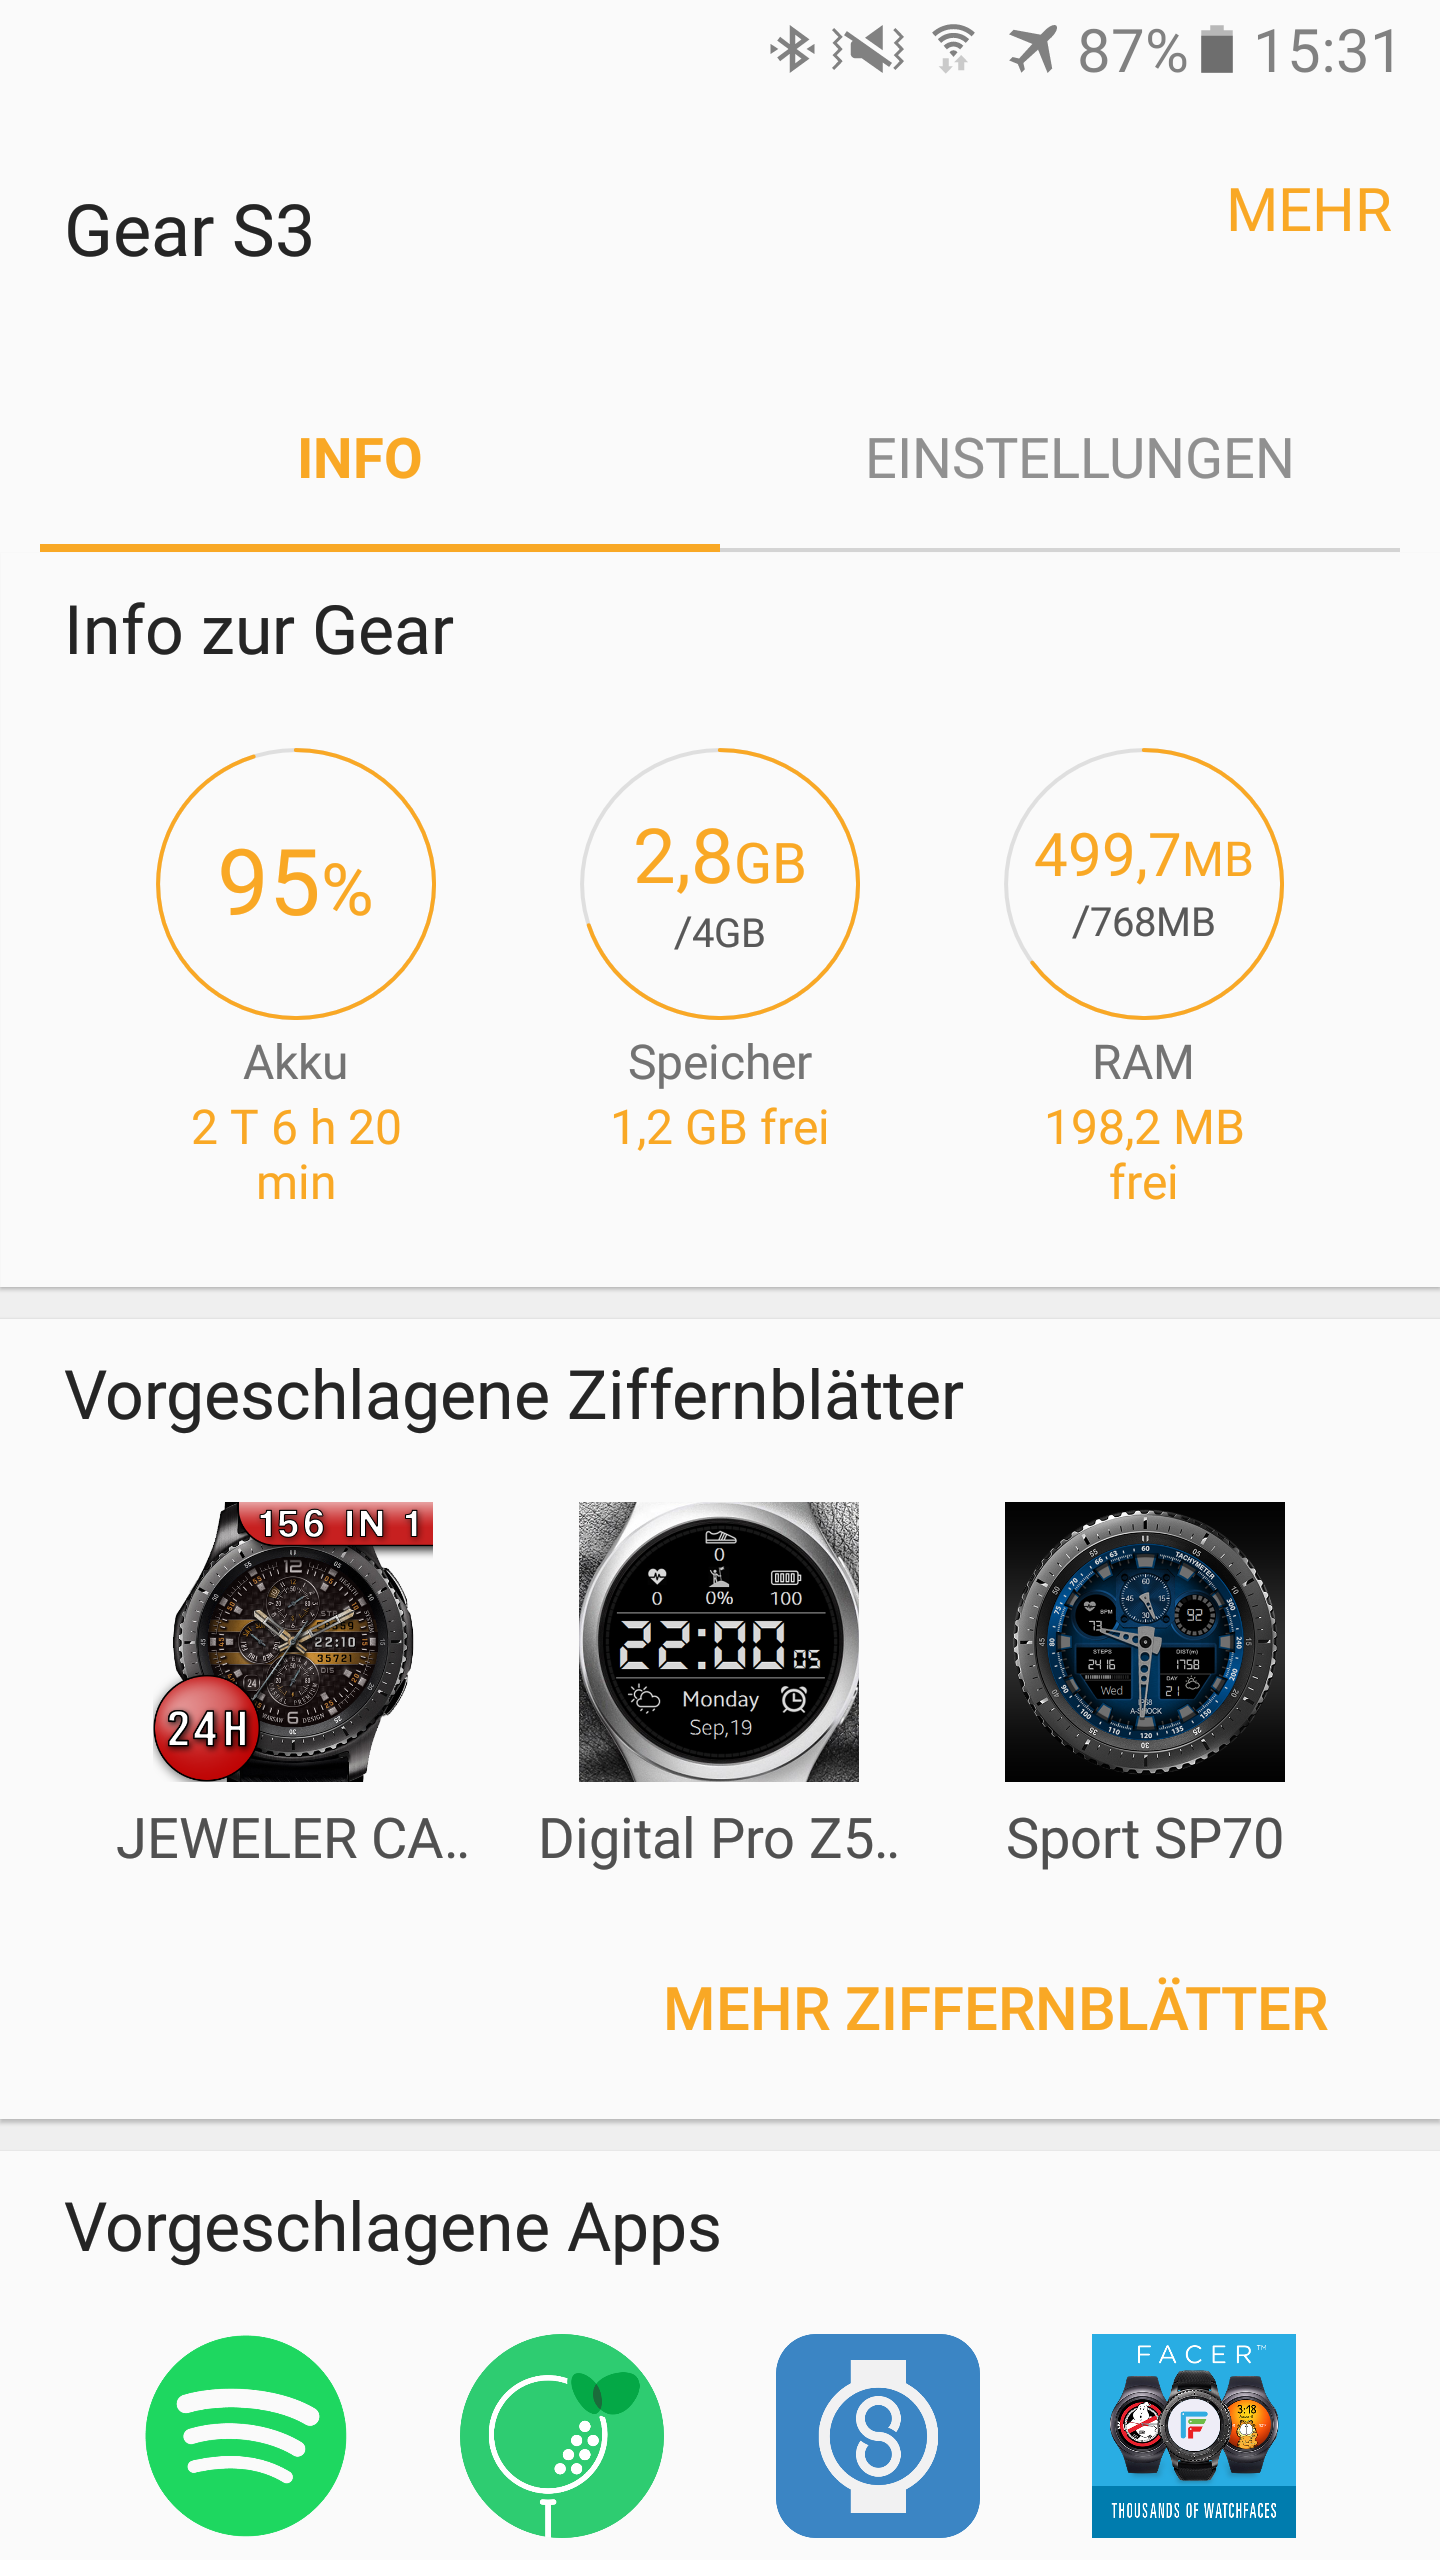 Screenshot_20170116-153148 Samsung Gear S3 frontier - Die Thronfolgerin im Test Gadgets Gefeatured Samsung Smartwatches Technologie Testberichte Tizen Wearables